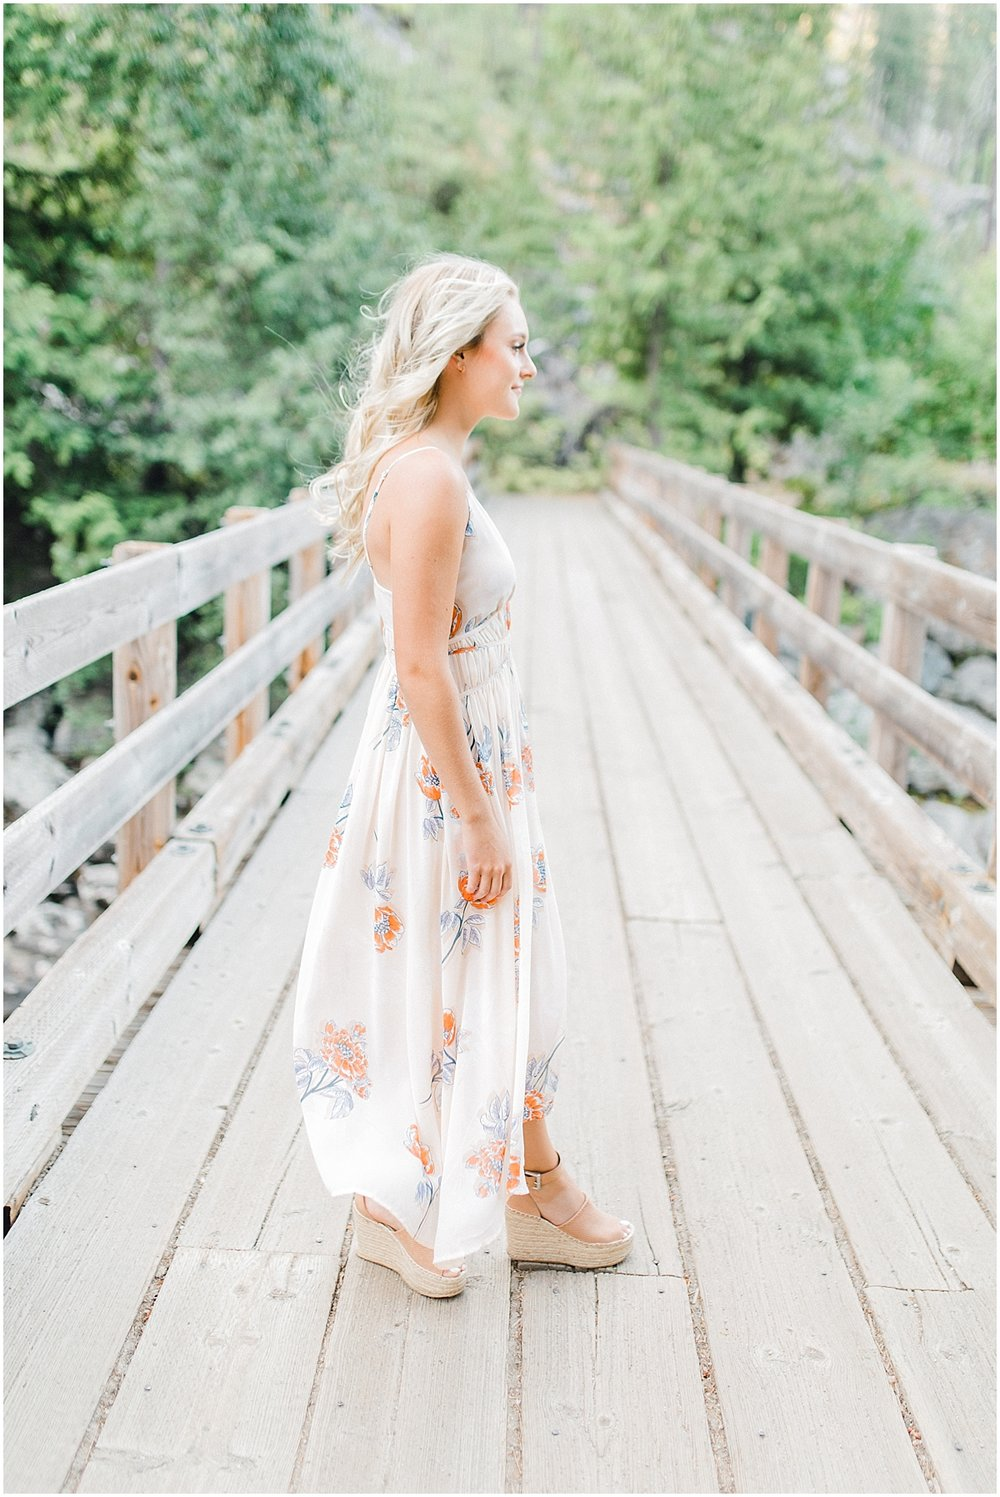 Emma Rose Company | Pacific Northwest Senior Portrait Photographer | Light and Airy Styled Senior Portraits | What to Wear to Senior Pictures | Kindred Presets | Seattle, Wenatchee and Portland Wedding and Portrait Photographer | Emma Rose6.jpg